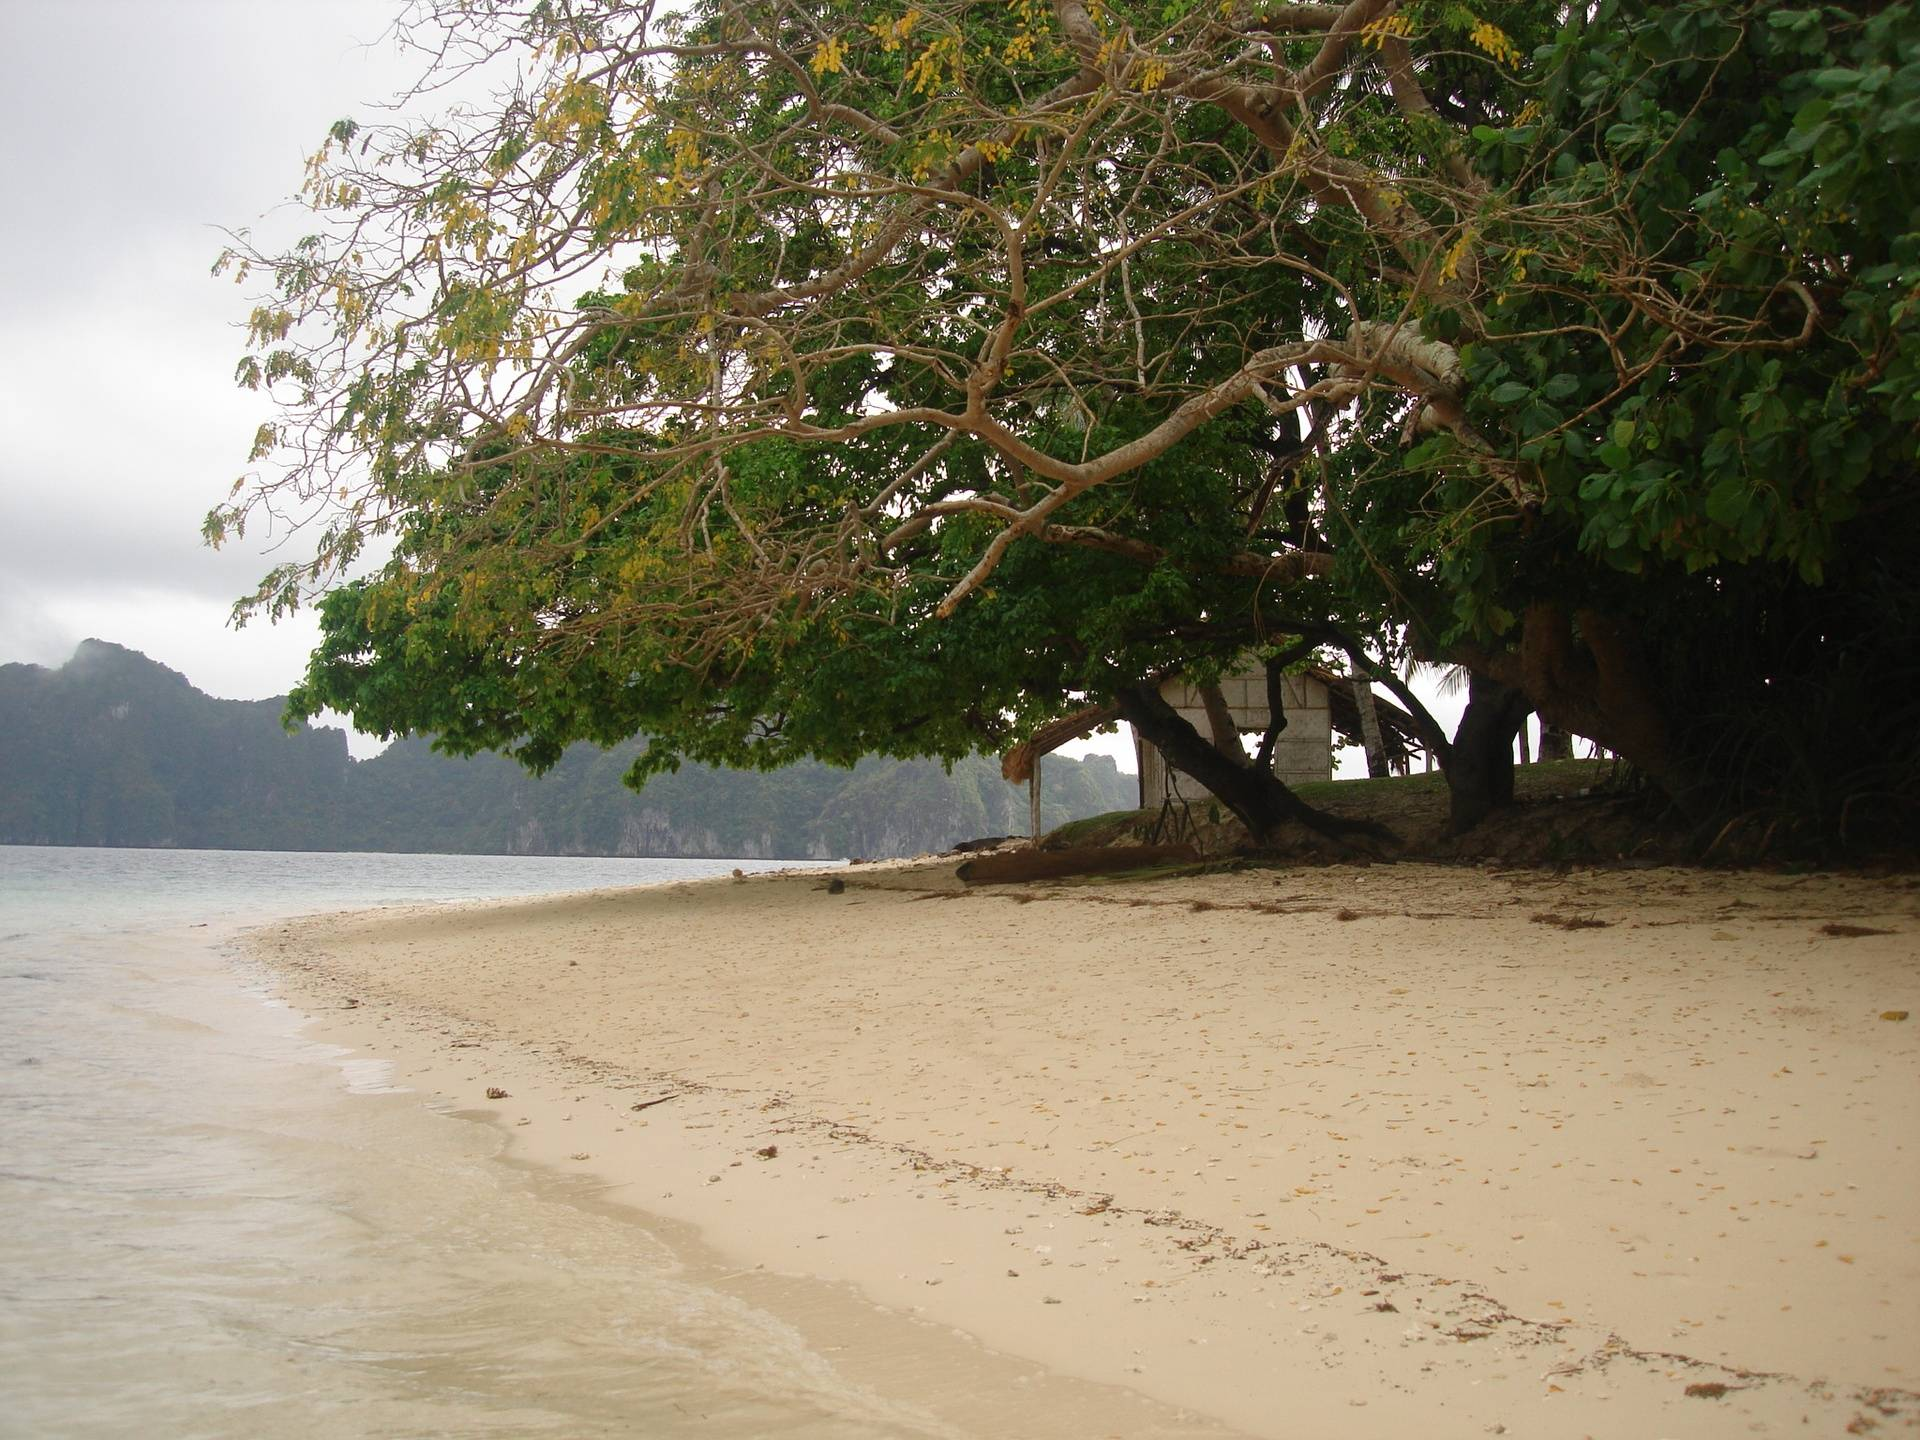 One of the many islands in El Nido